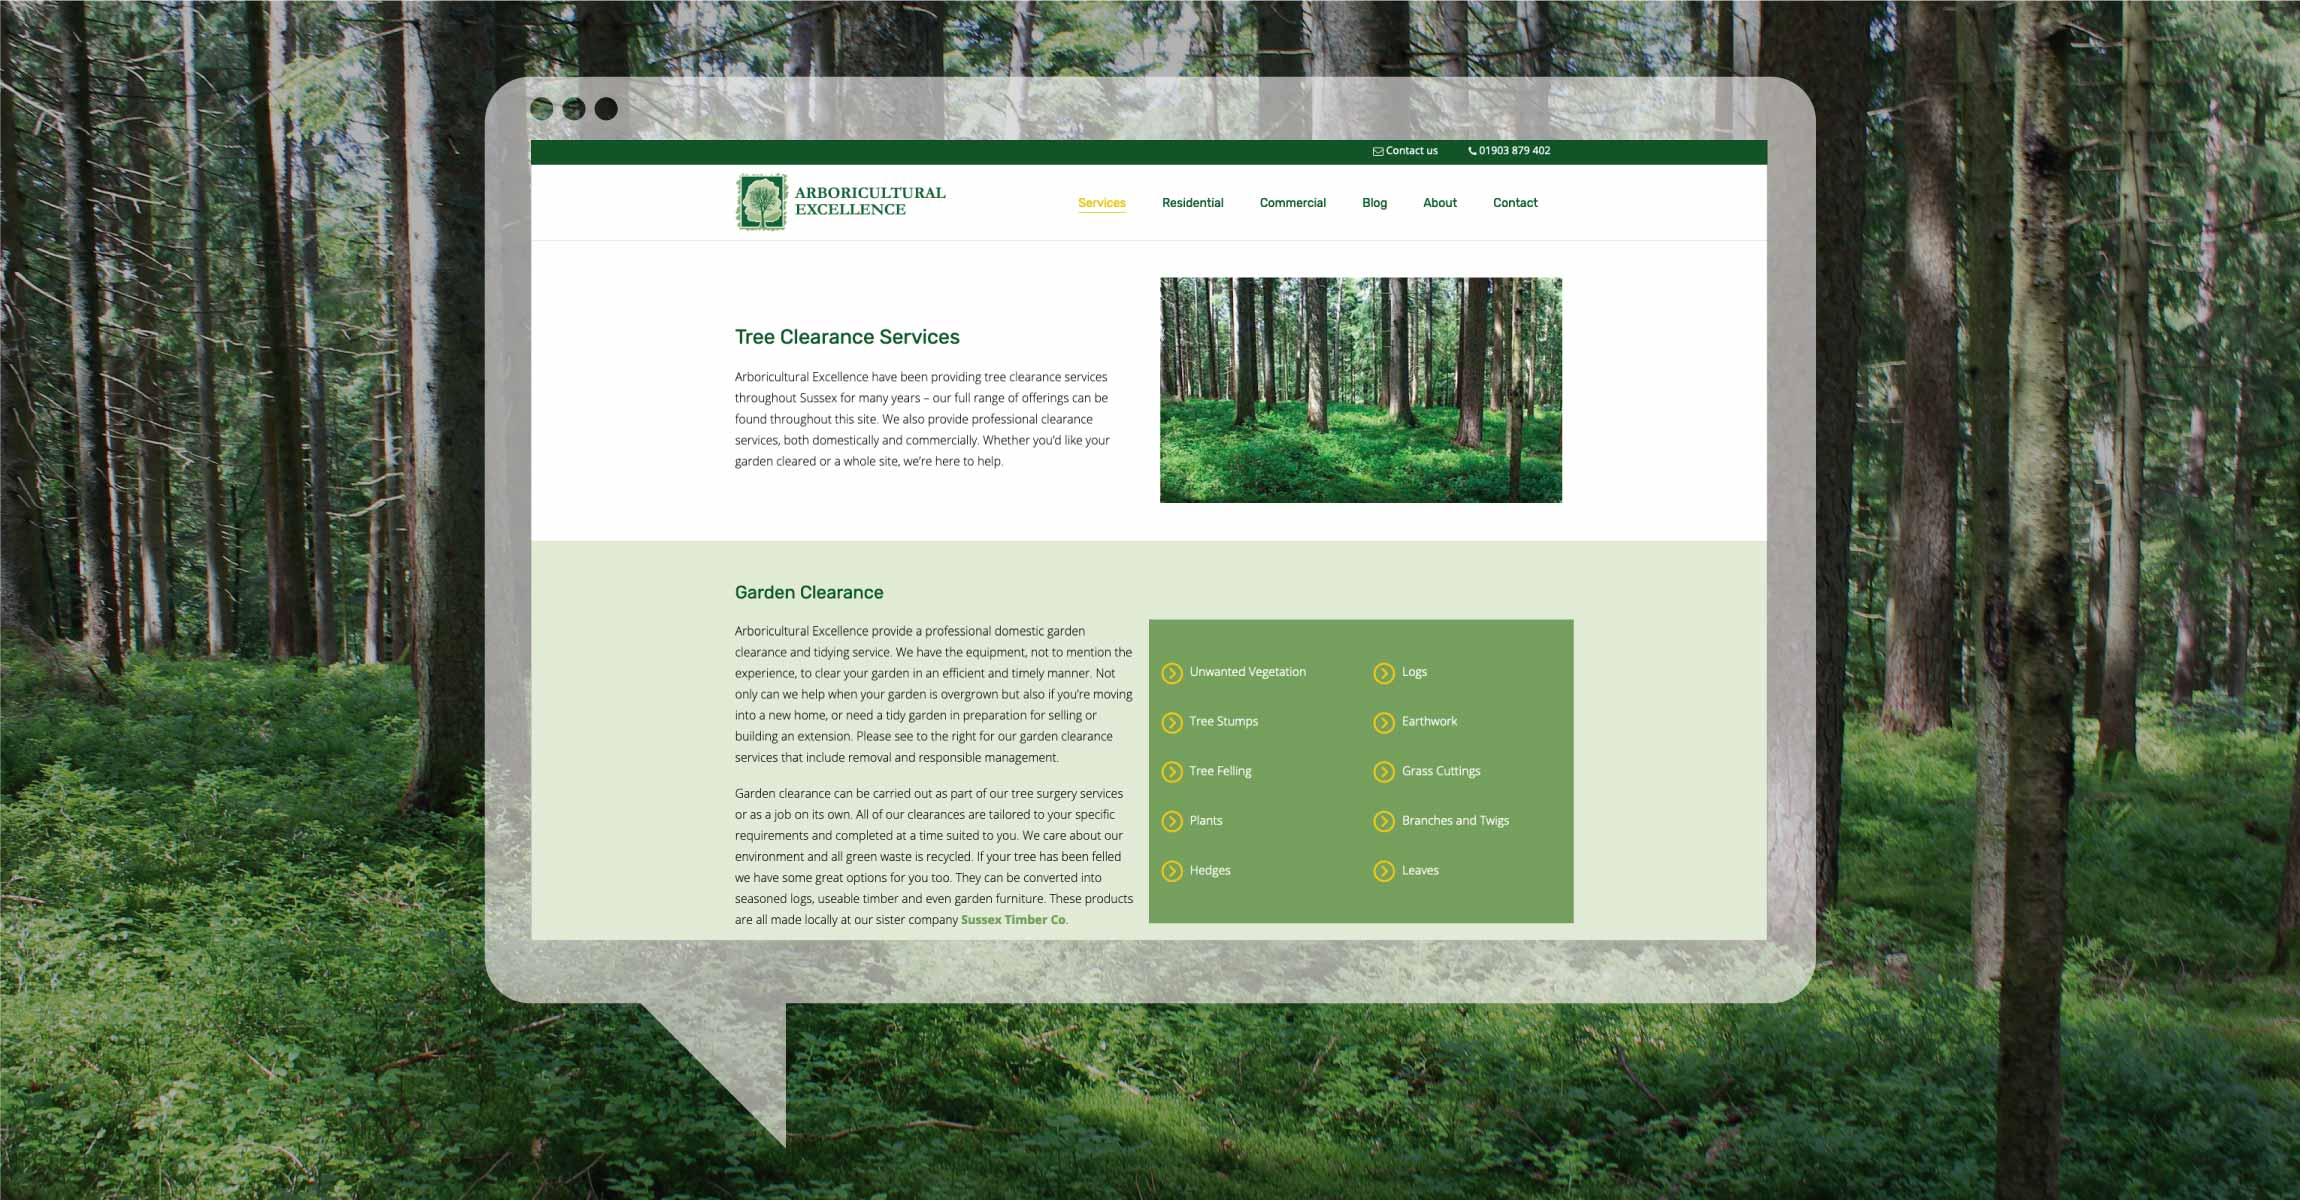 Arboricutural excellence Web Design by Hooked Design and Marketing